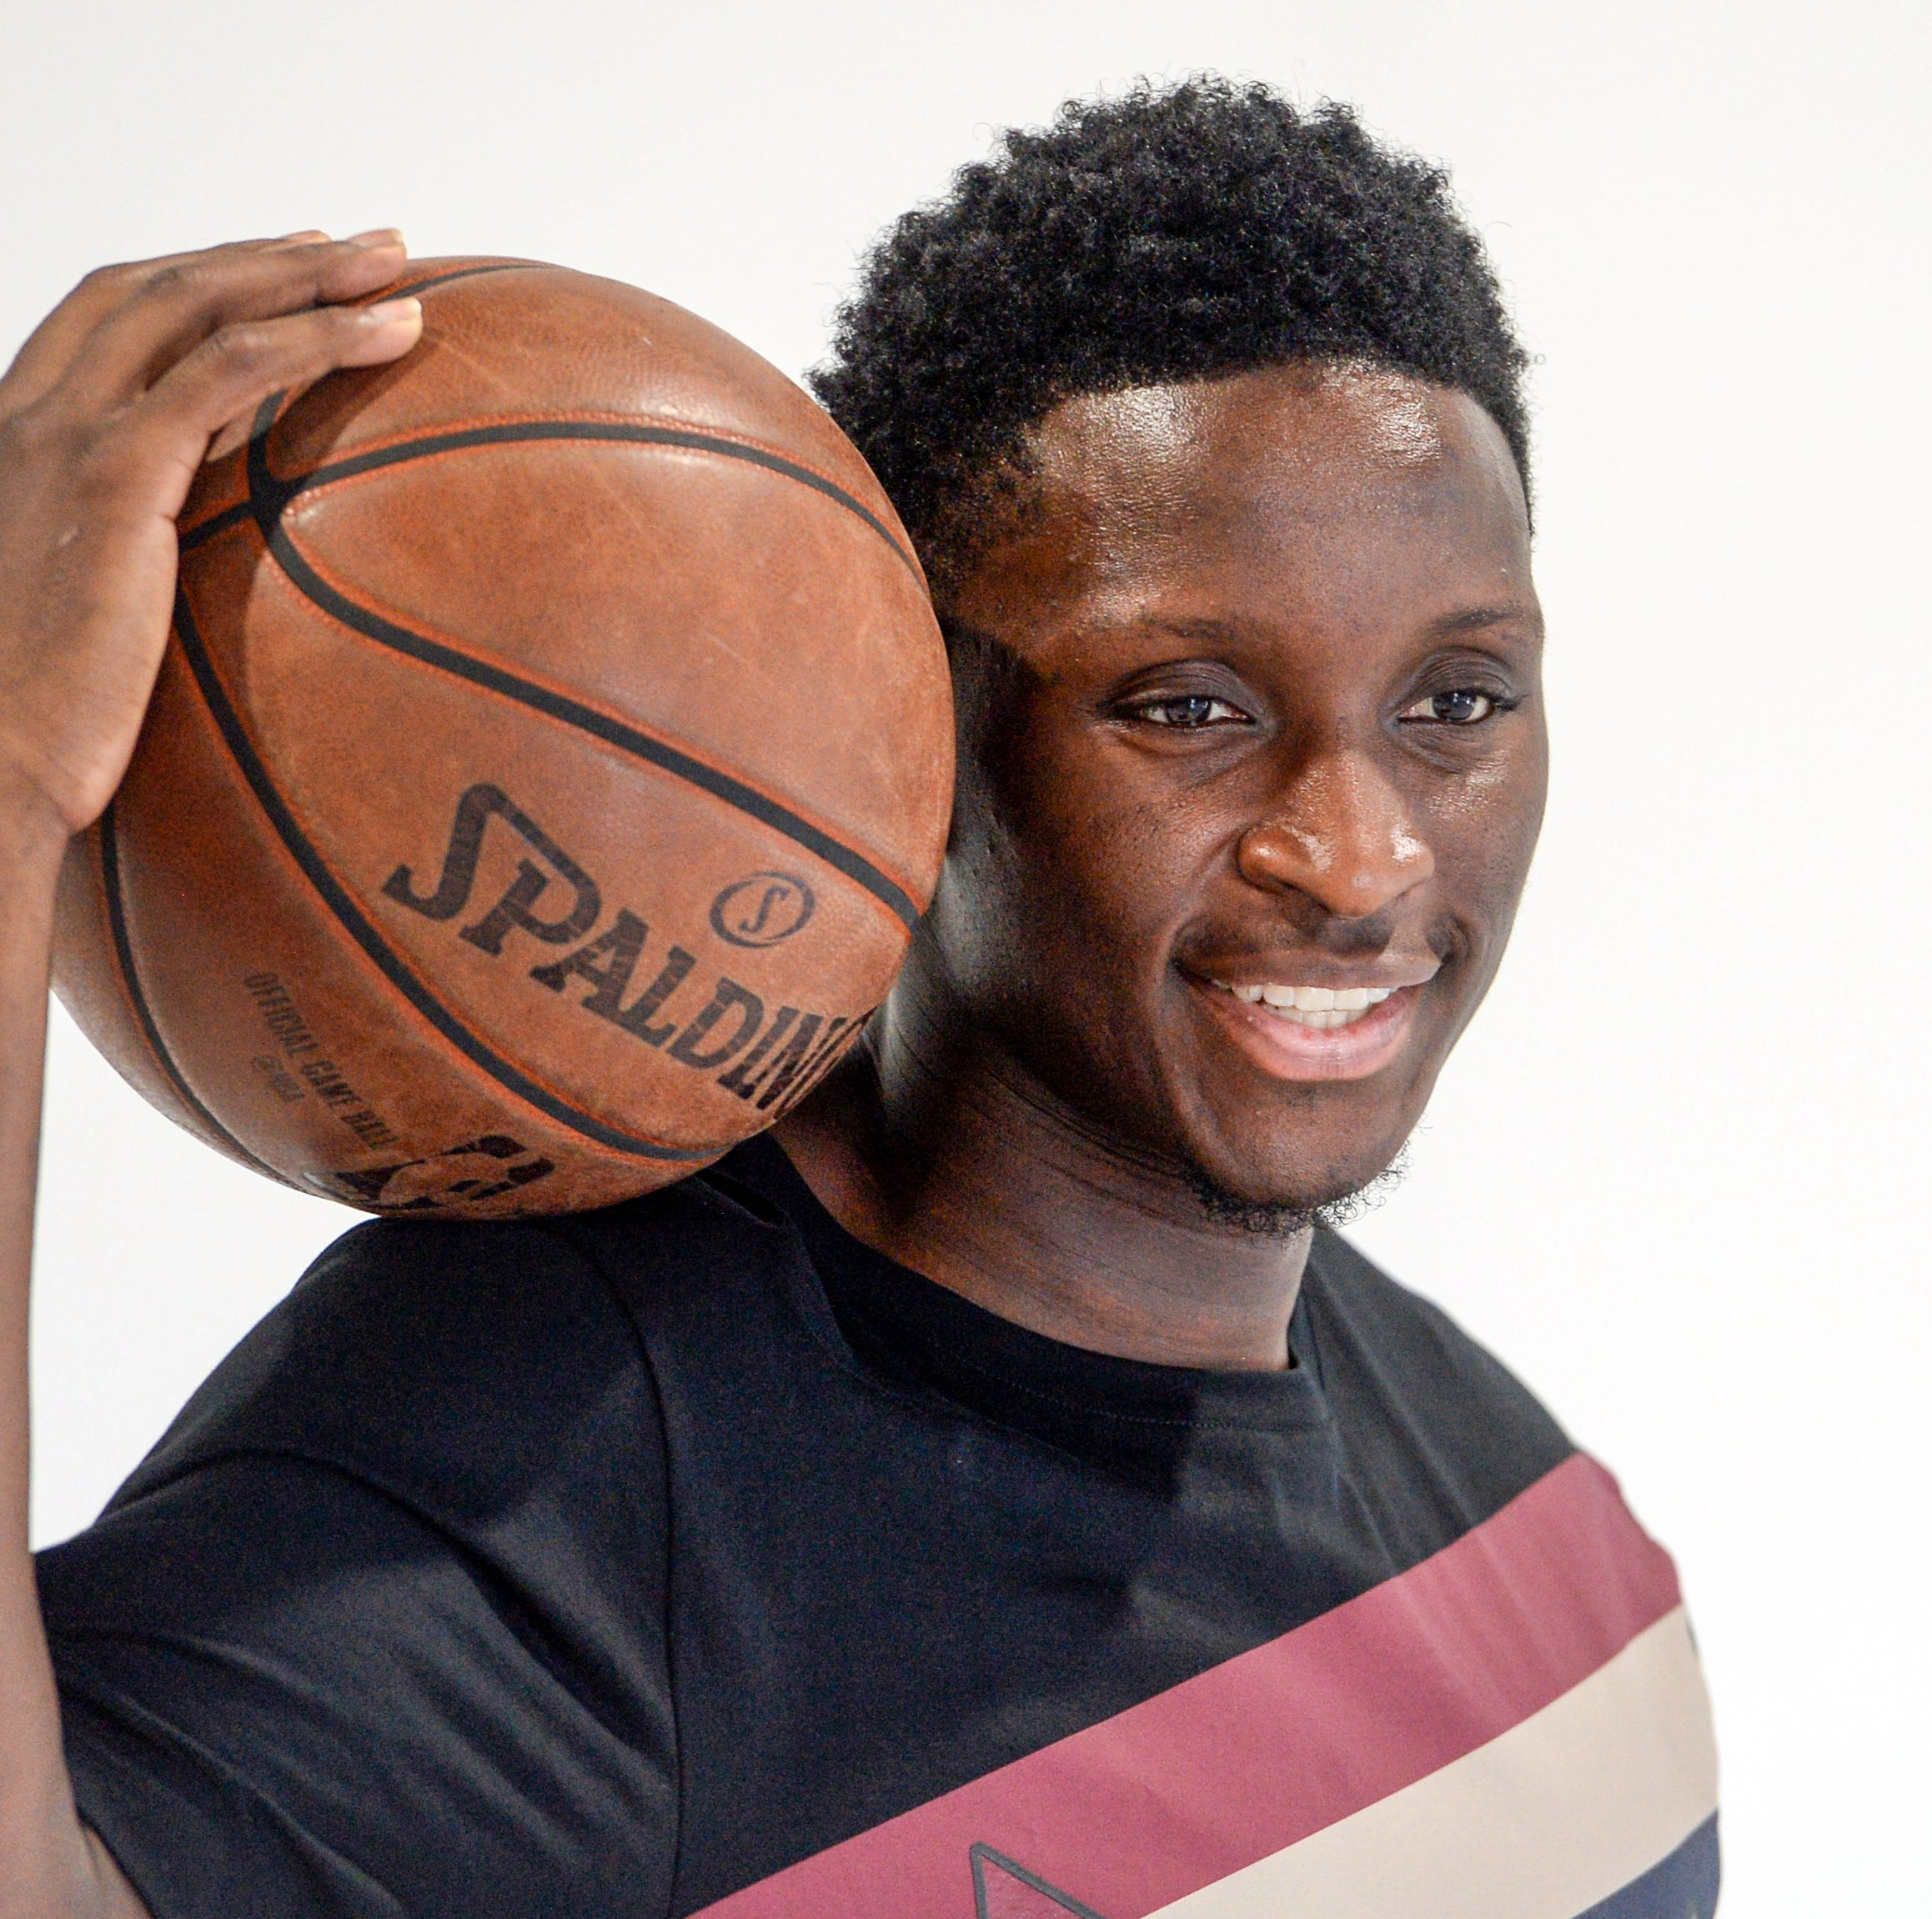 Victor Oladipo's small act of kindness makes big difference